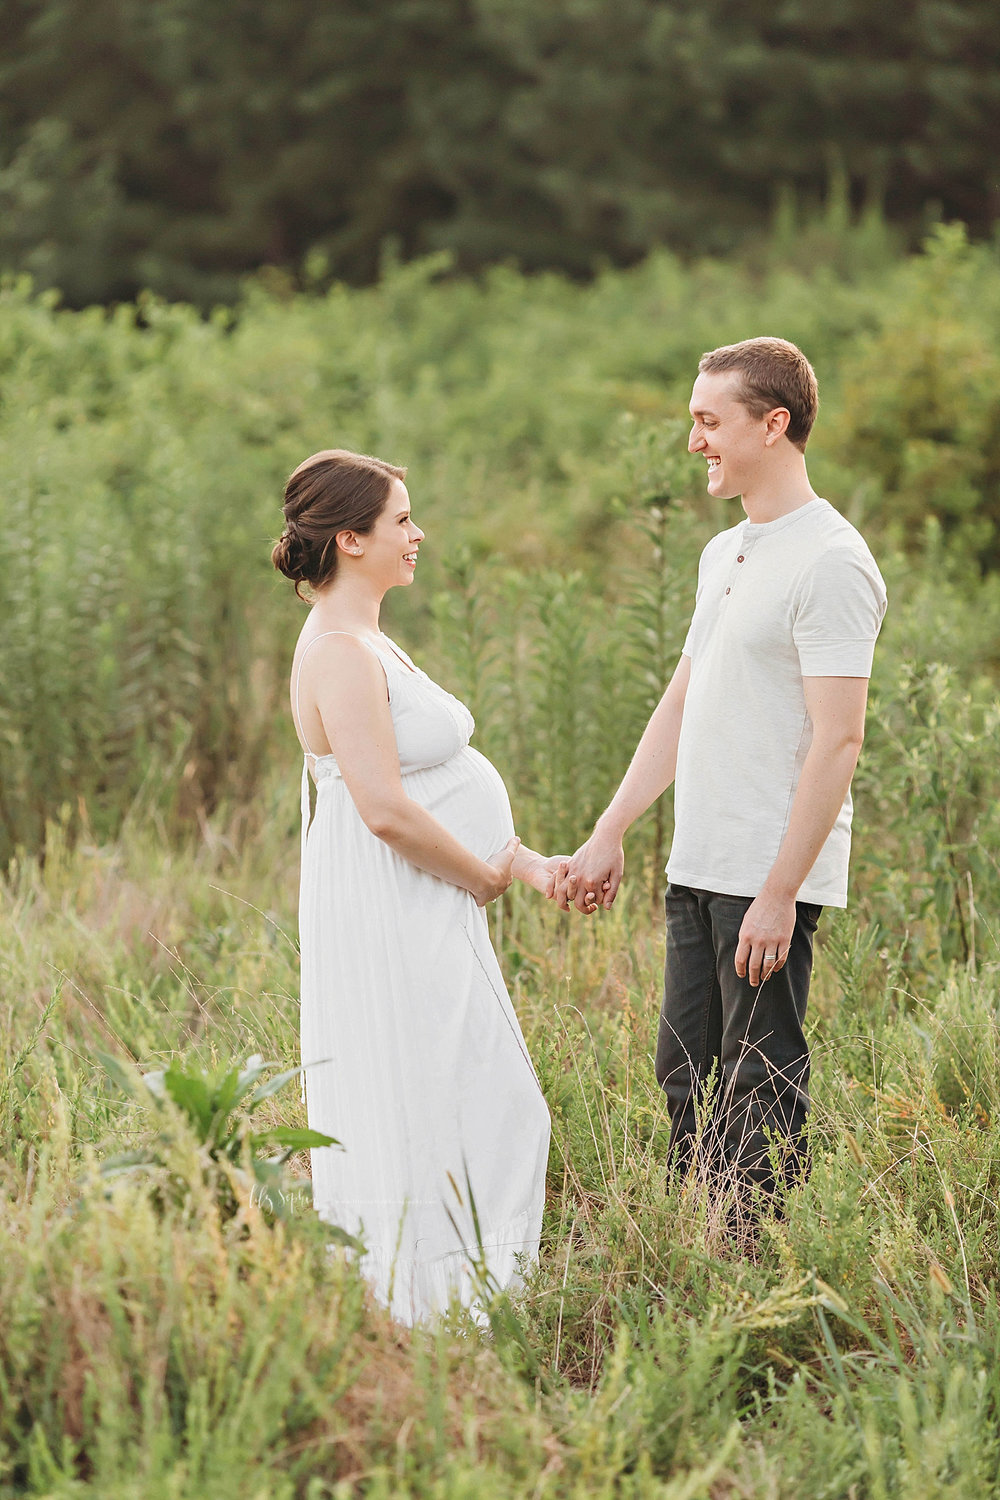 Image of a pregnant woman, and her husband, standing in a field, facing each other and holding hands.